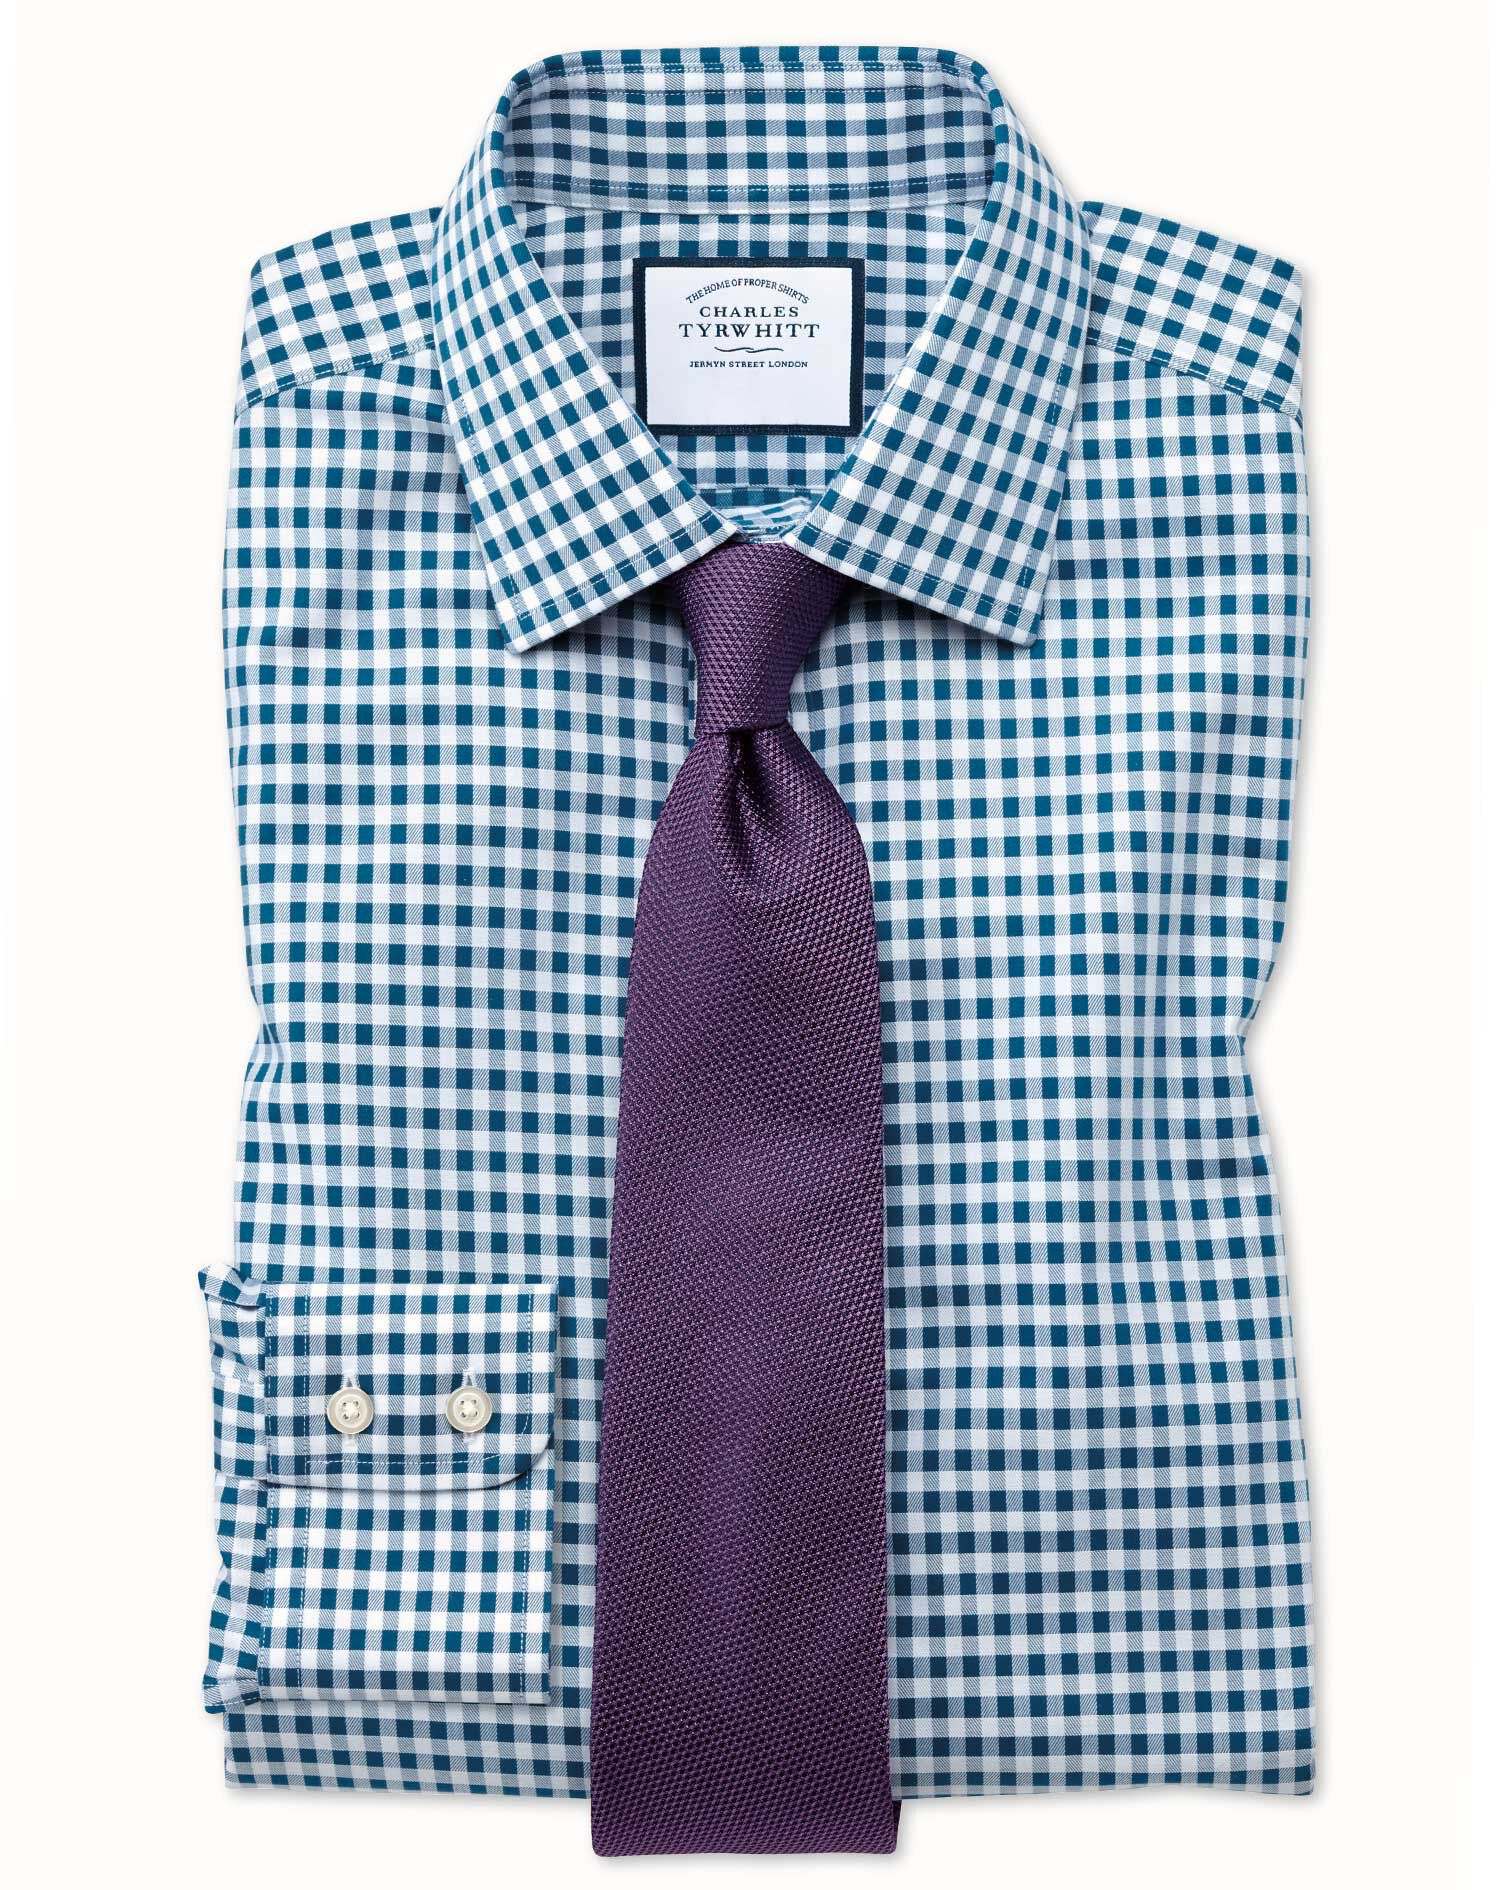 Extra Slim Fit Non-Iron Gingham Teal Cotton Formal Shirt Single Cuff Size 15/34 by Charles Tyrwhitt